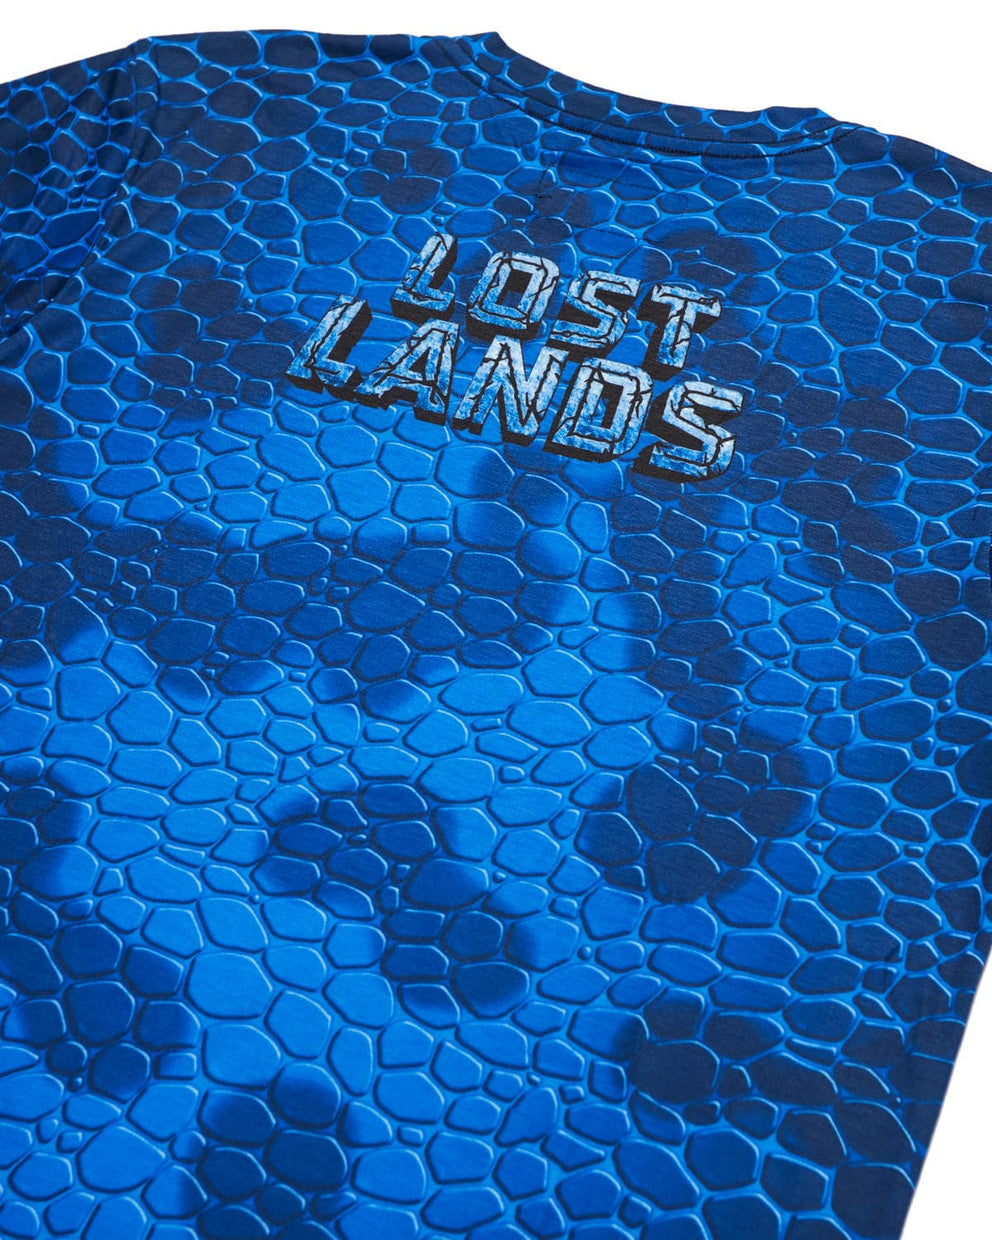 'Couch Lands' Dye Sub Tee - Blue